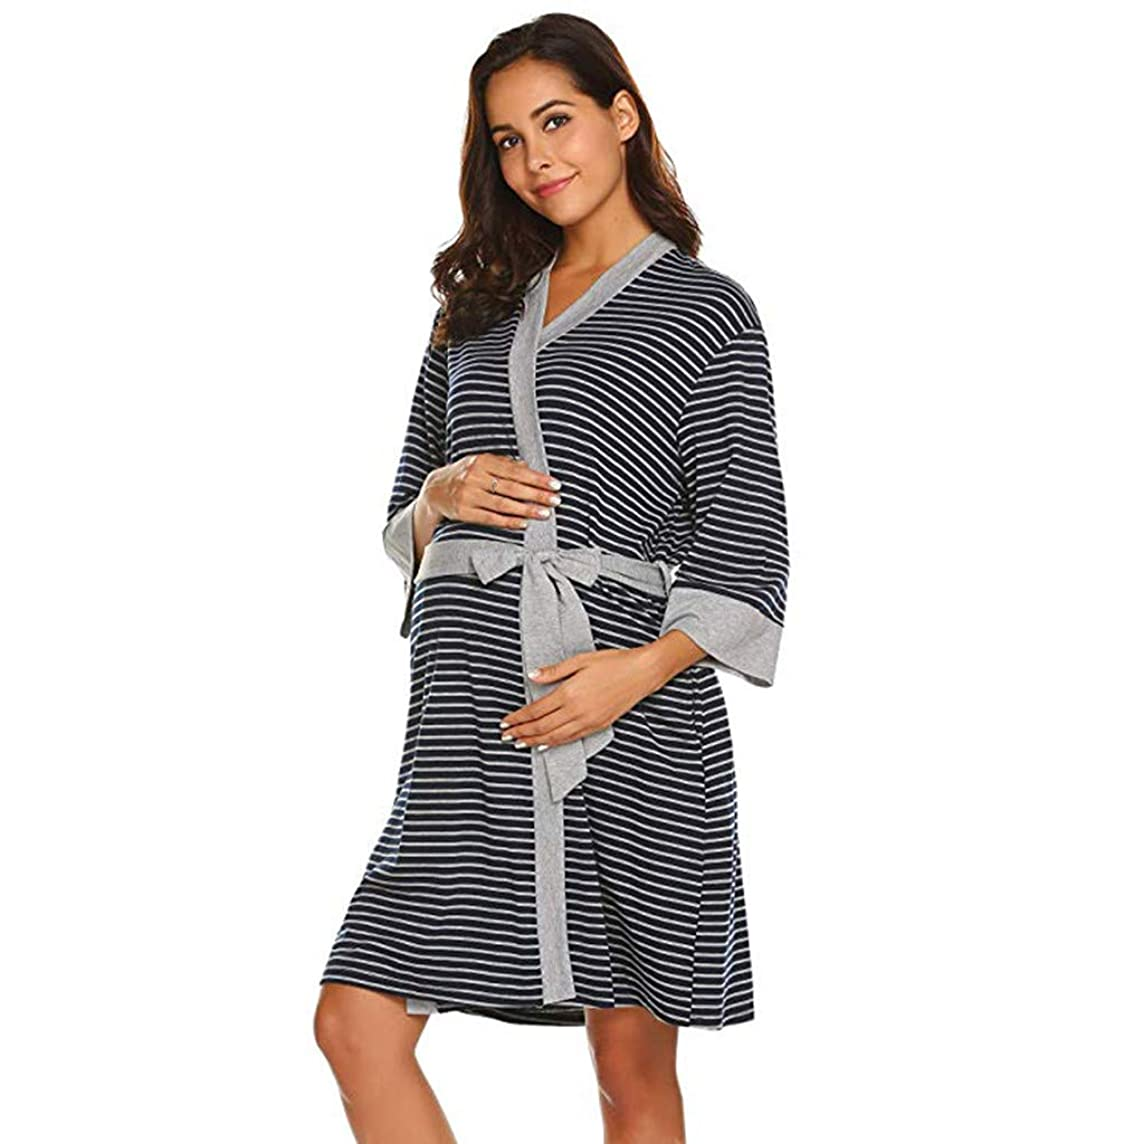 c189db09ade60 ... iLXHD Womens Maternity Pregnancy Labor Robe Delivery Nursing Nightgowns  Hospital Breastfeeding Gown S-XXL